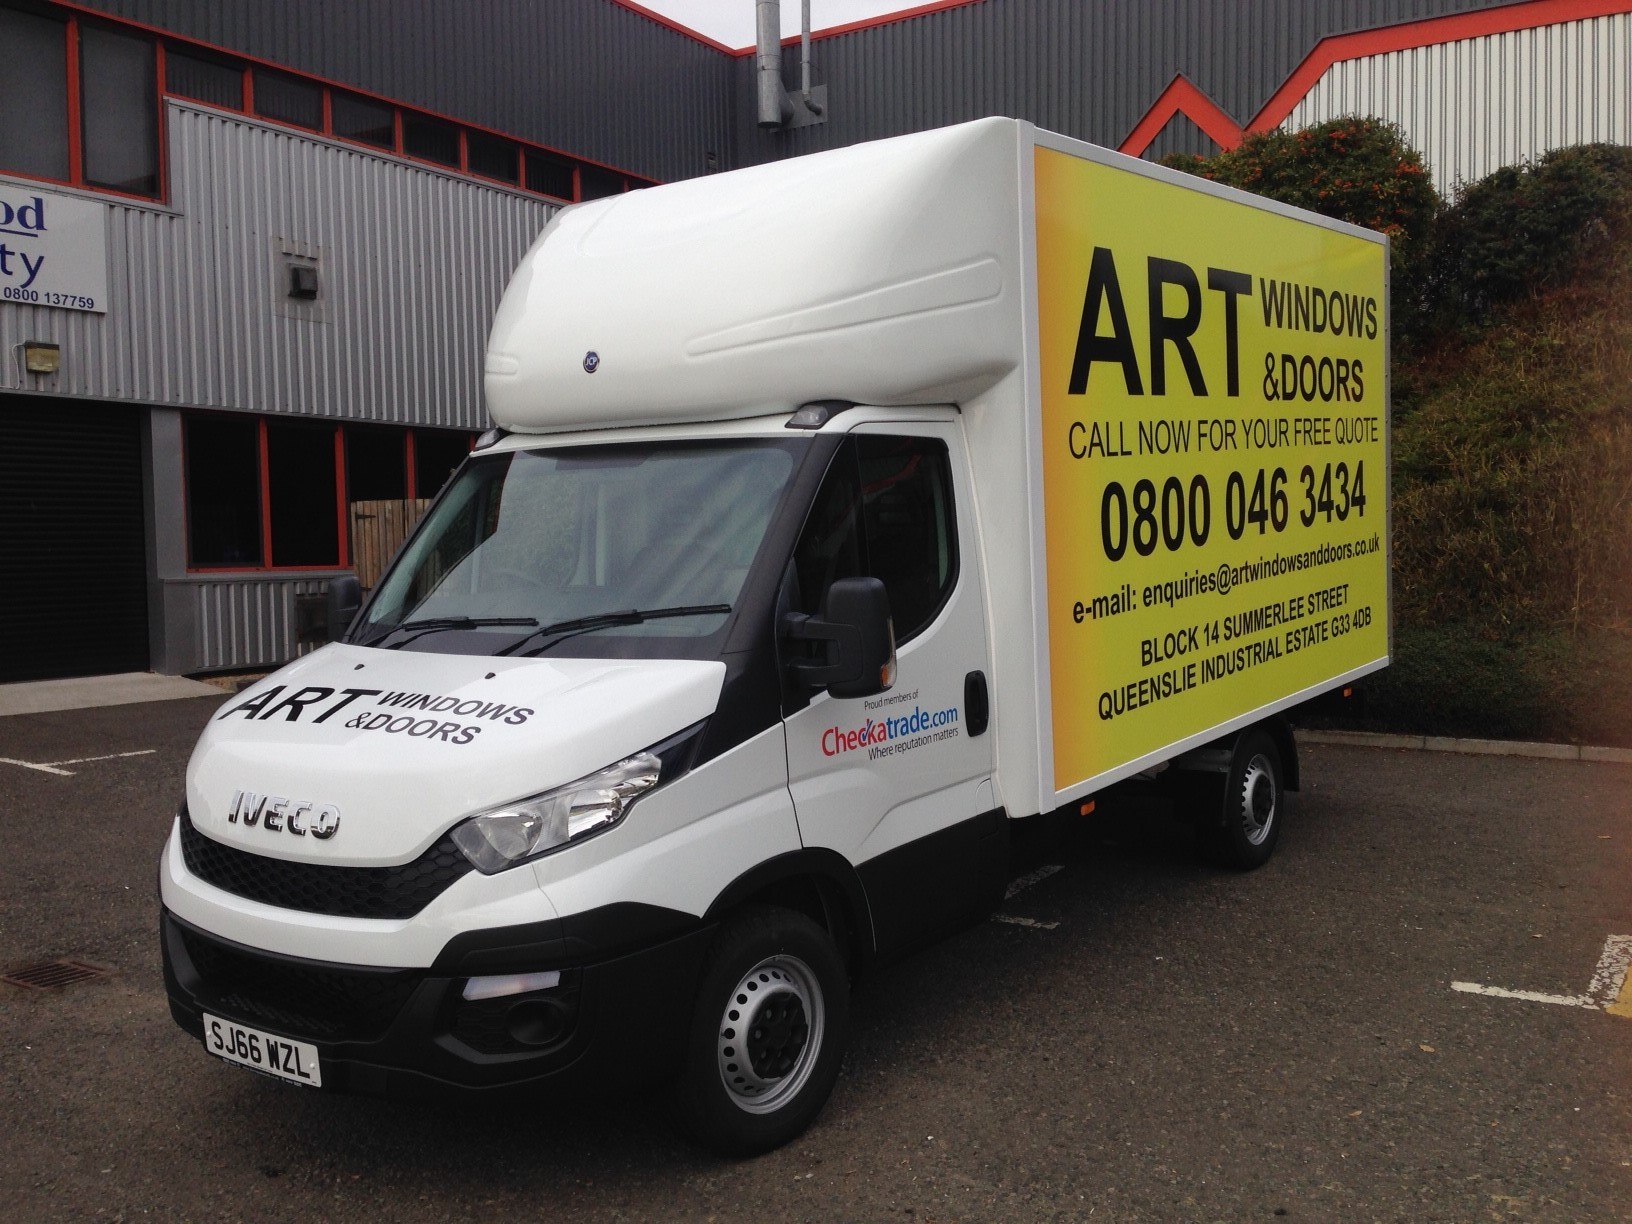 glasgow van signs, vehicle graphics glasgow, glasgow car stickers